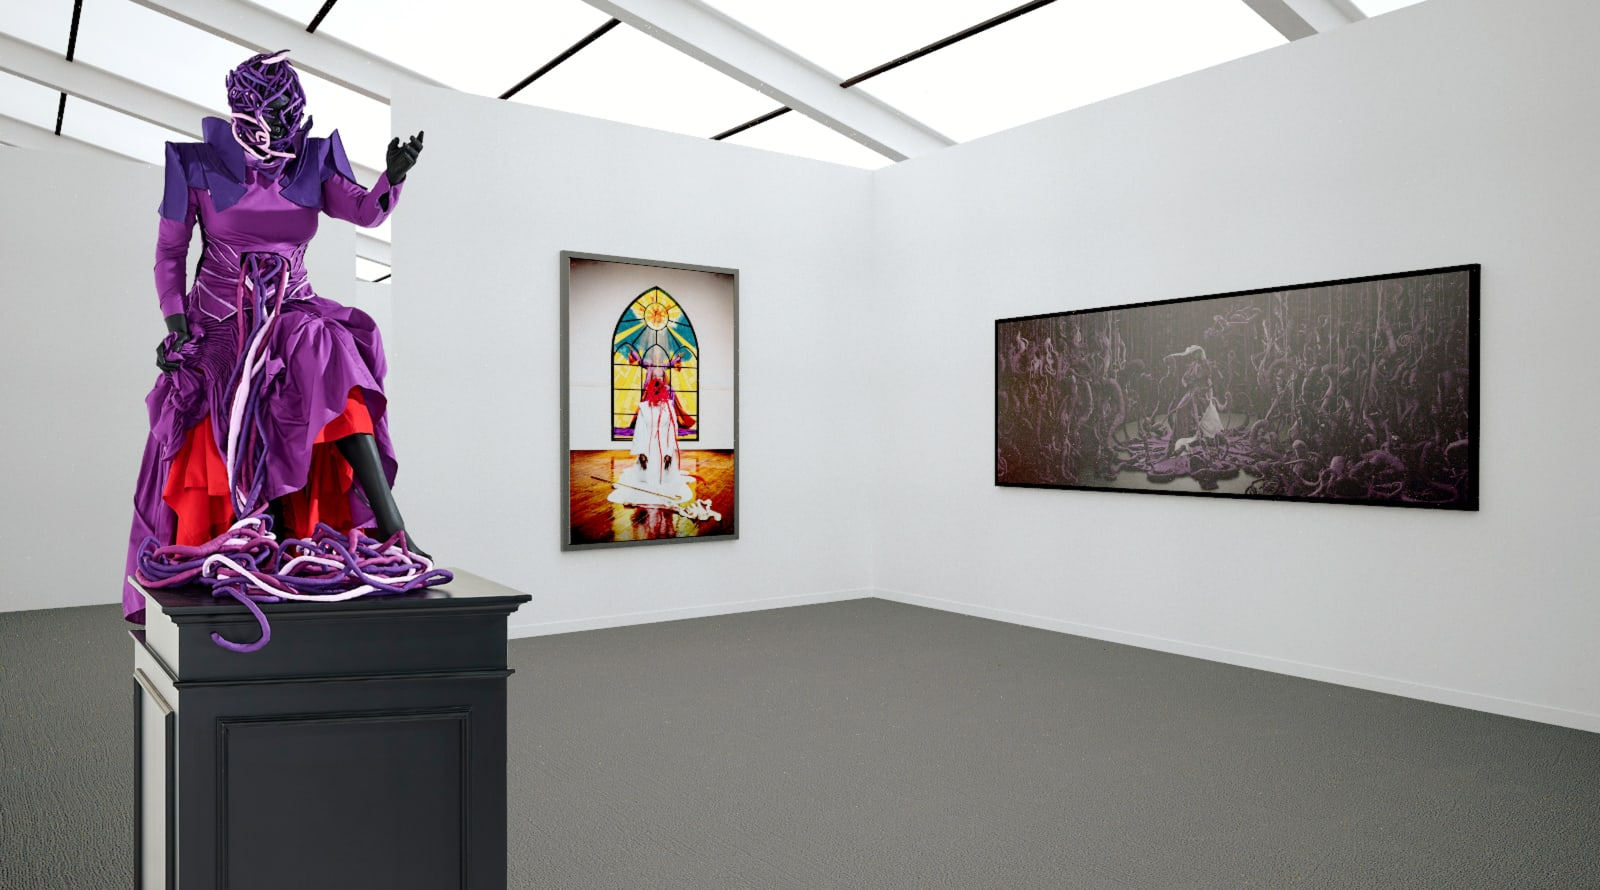 Works by Mary Sibande at Frieze New York (Installation View), 2020, Kavi Gupta